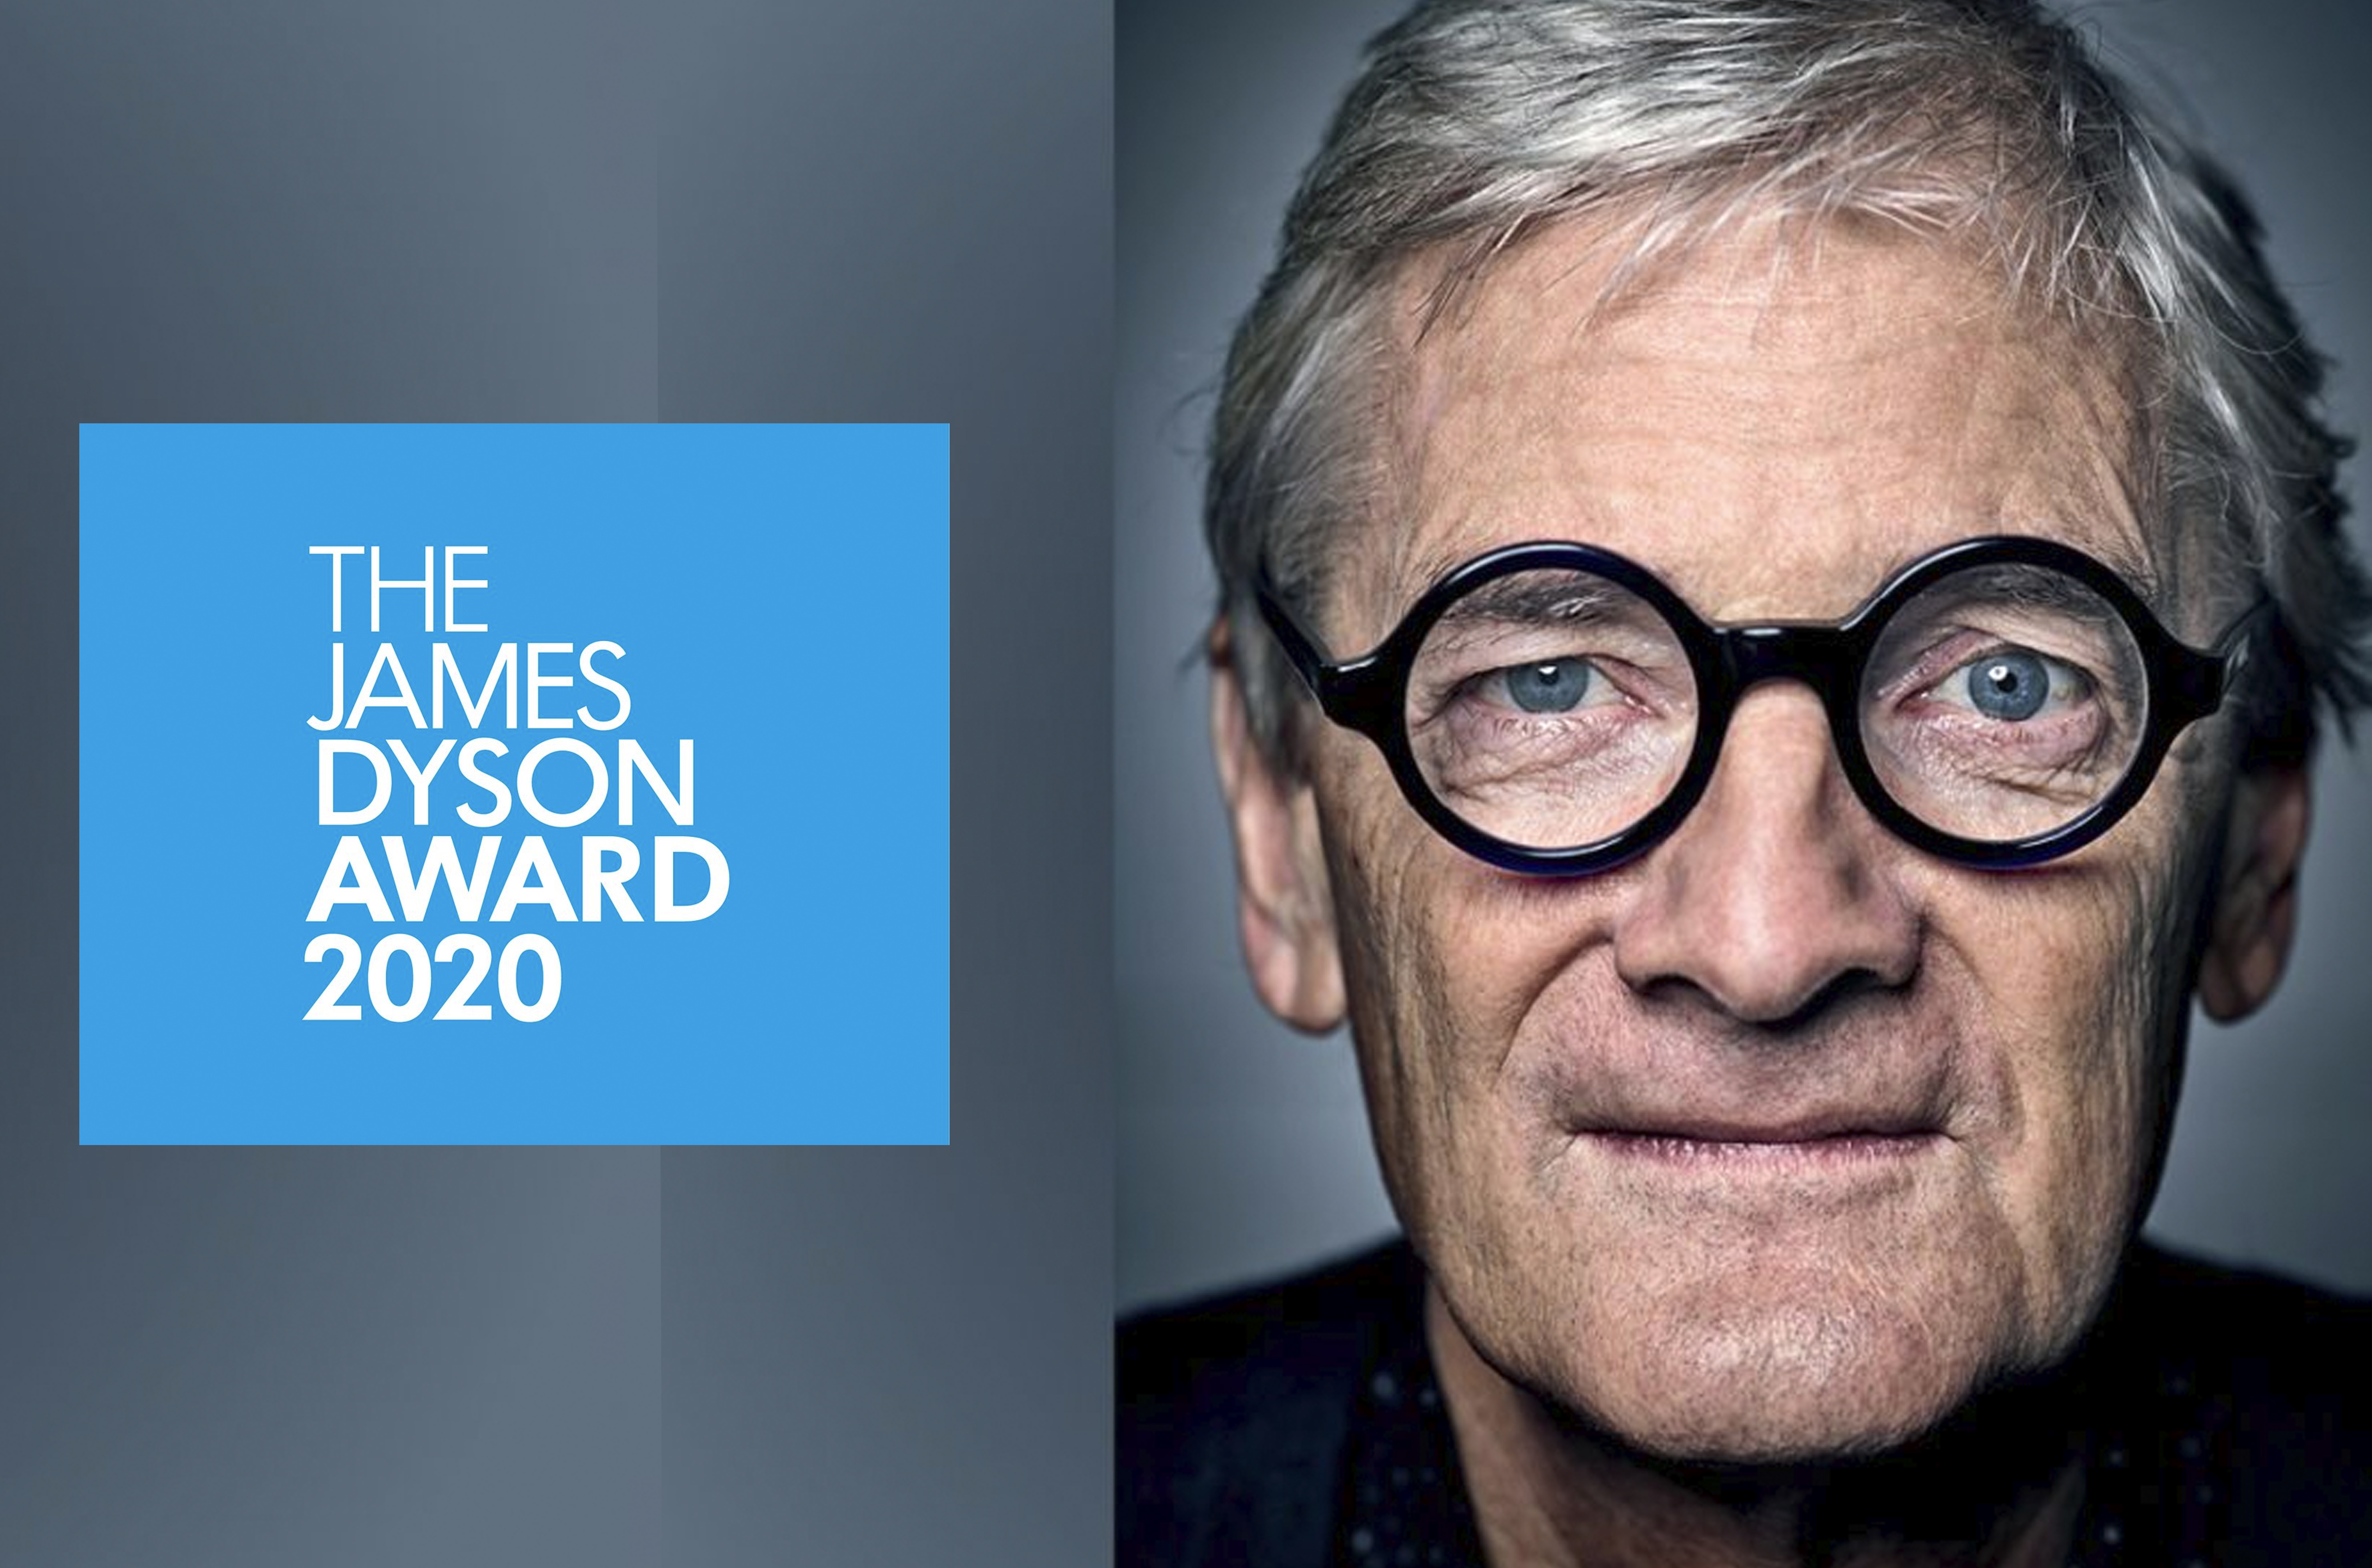 THE JAMES DYSON AWARD IS LOOKING FOR A CREATIVE MIND WITH FRESH IDEAS FROM AROUND THE WORLD